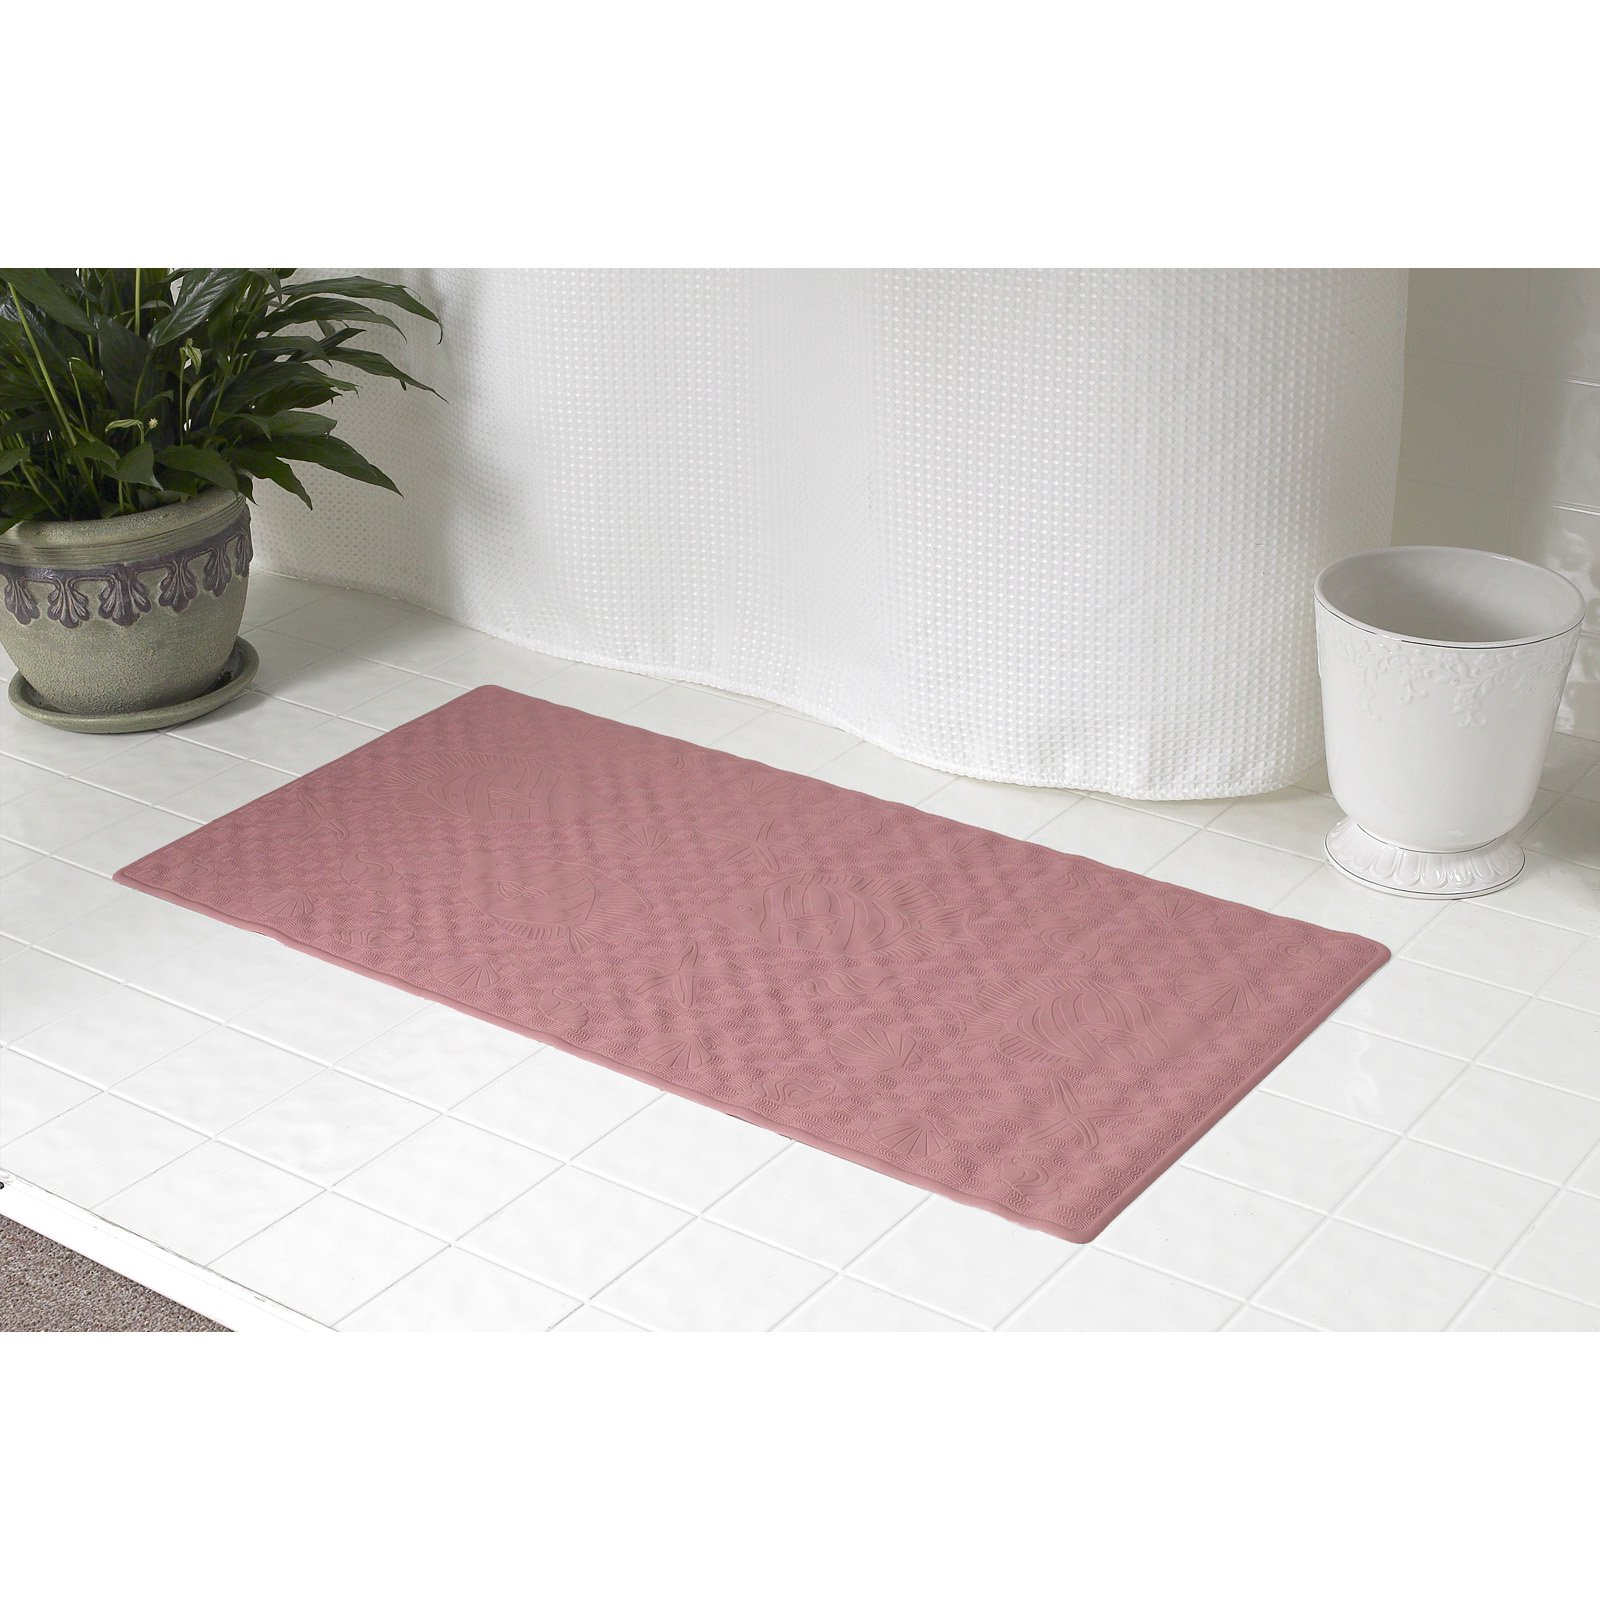 Large (18'' x 36'') Slip-Resistant Rubber Bath Tub Mat in Rose